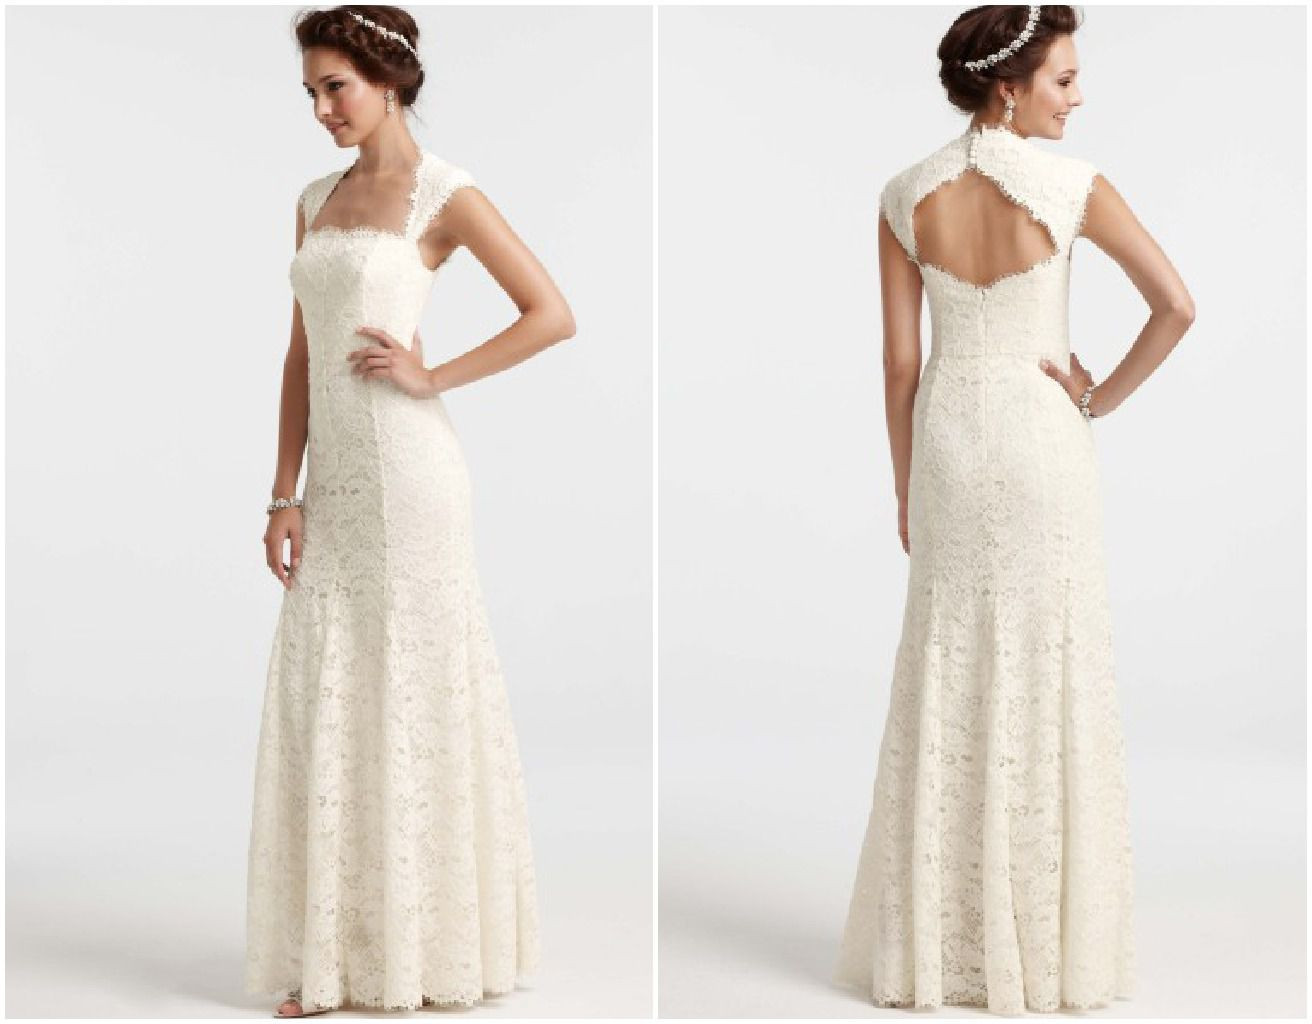 Ask Maggie Relaxed Style Wedding Gowns